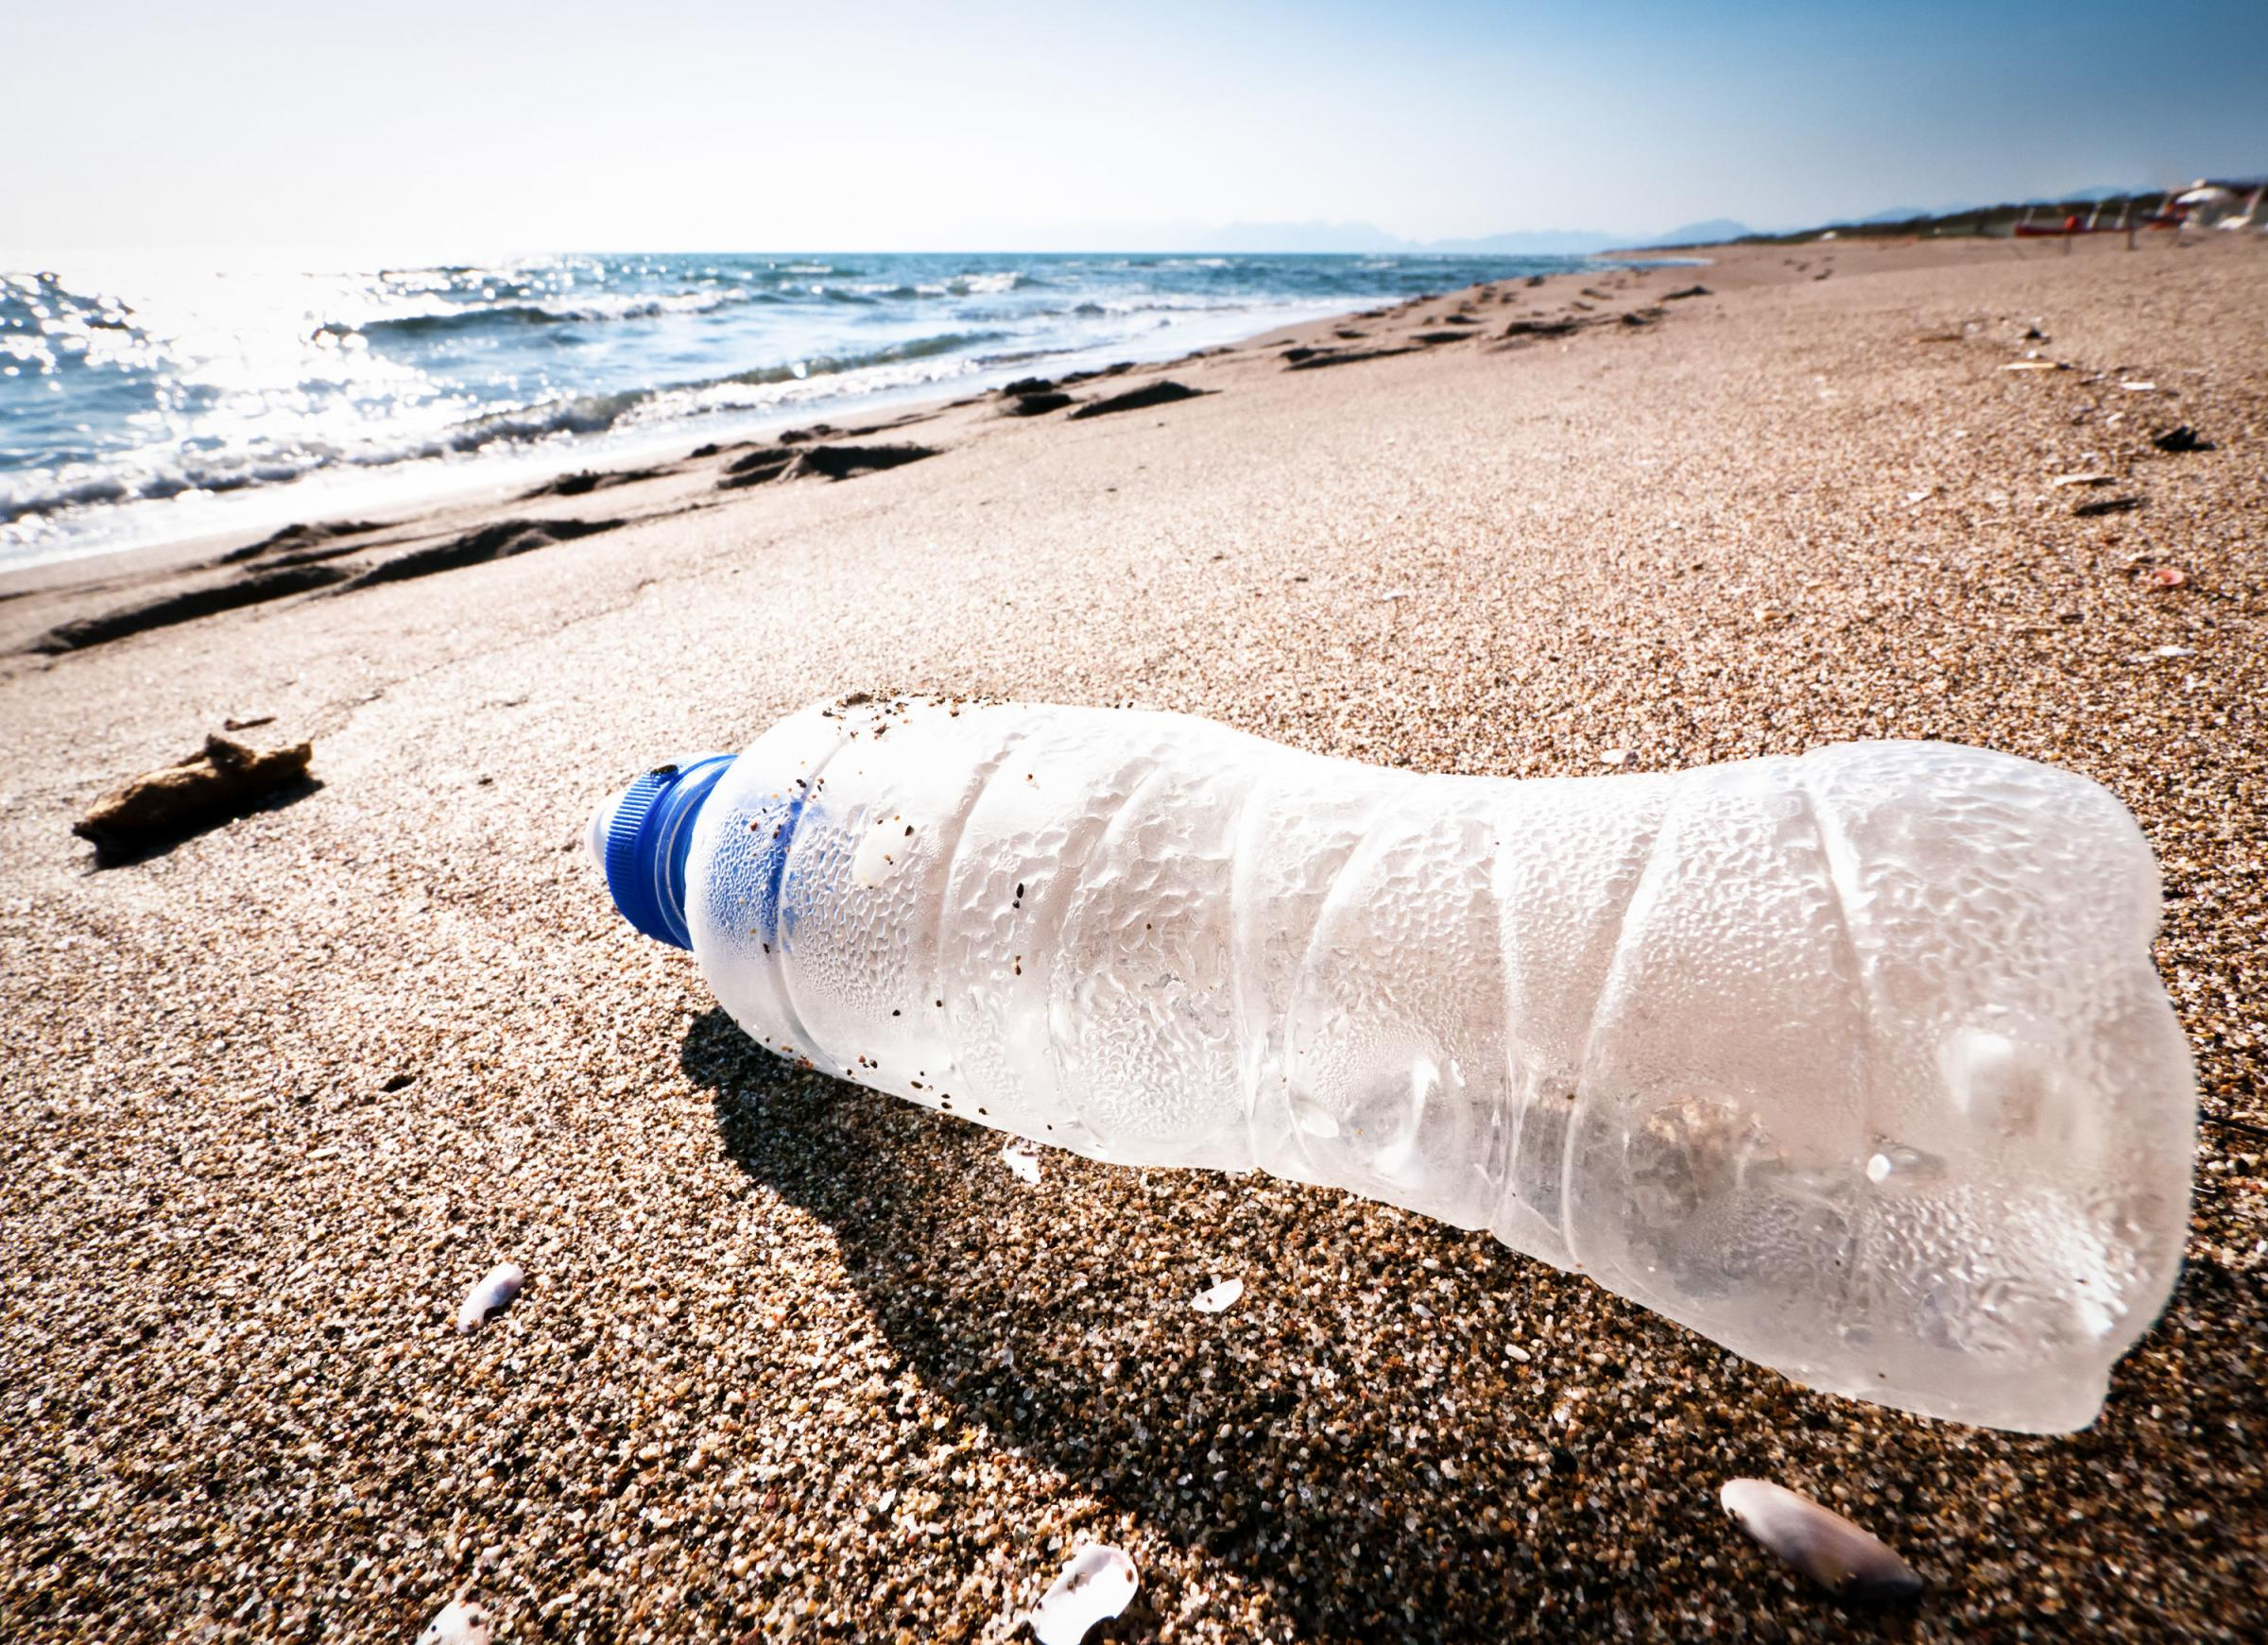 10 top tips on how to ditch the plastic on holiday.